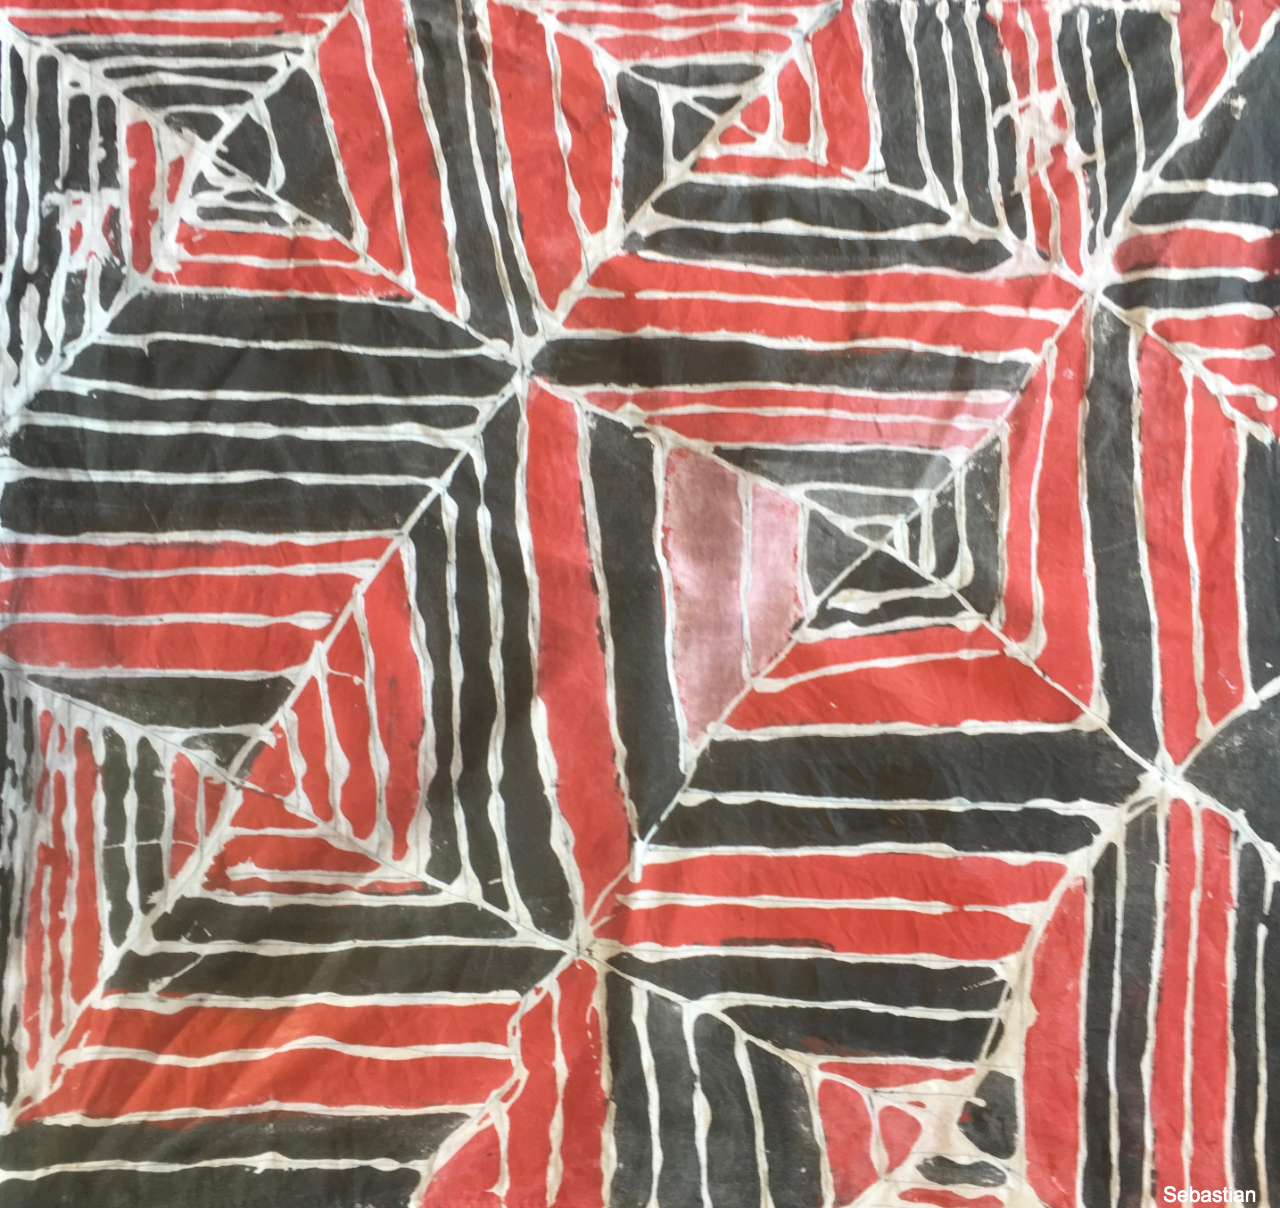 Textile design using glue resist inspired by mudcloth from Mali